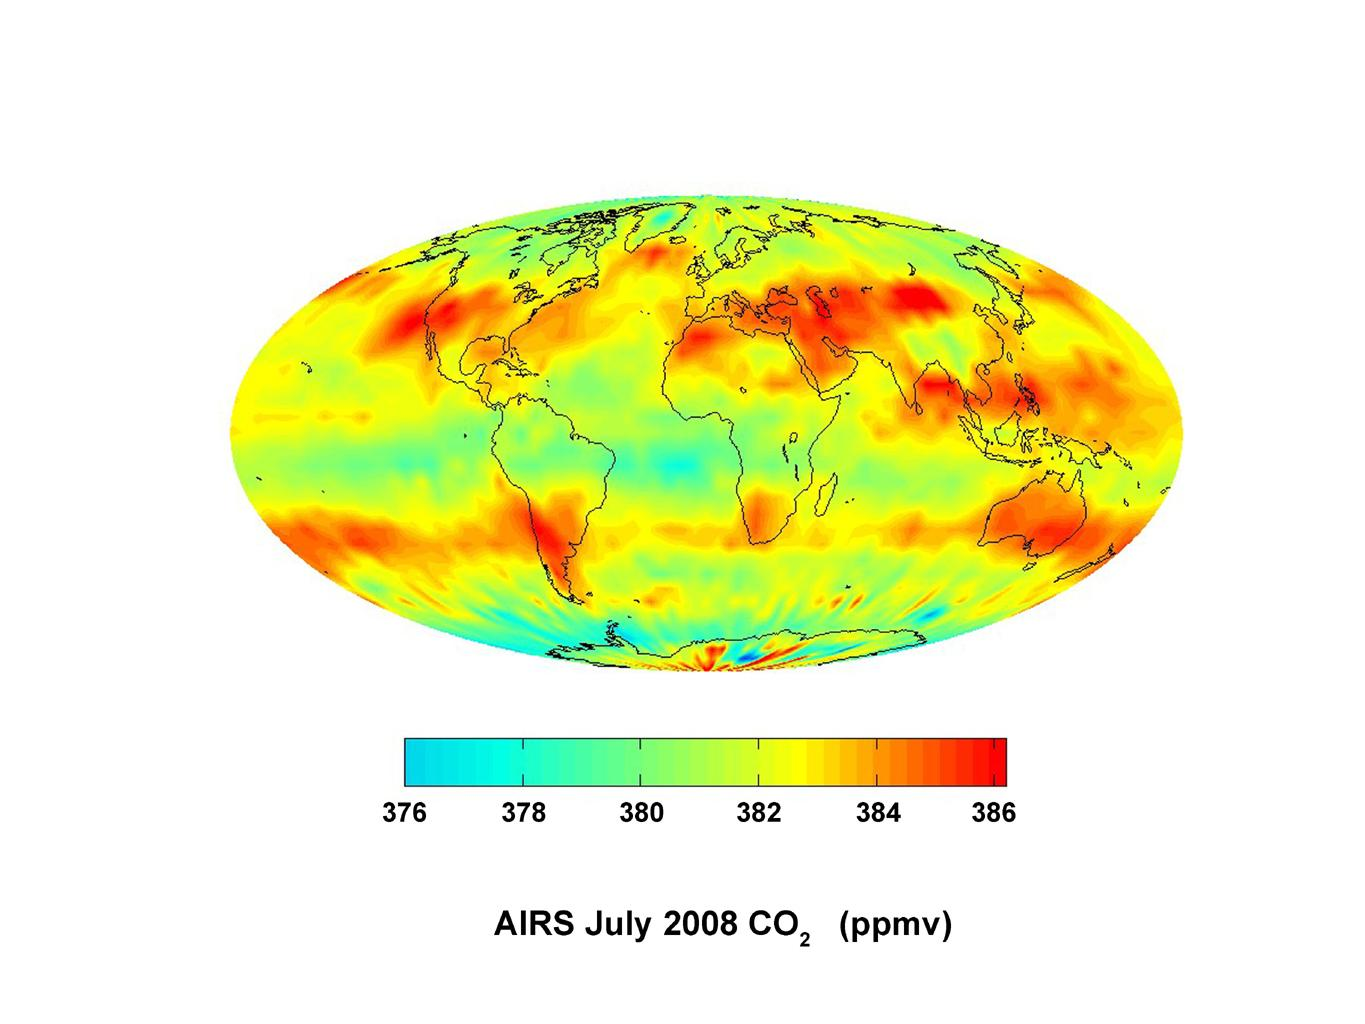 This image, created with data acquired by the Atmospheric Infrared Sounder instrument during July 2008, shows large scale patterns of carbon dioxide concentrations that are transported around the Earth by the general circulation of the atmosphere.